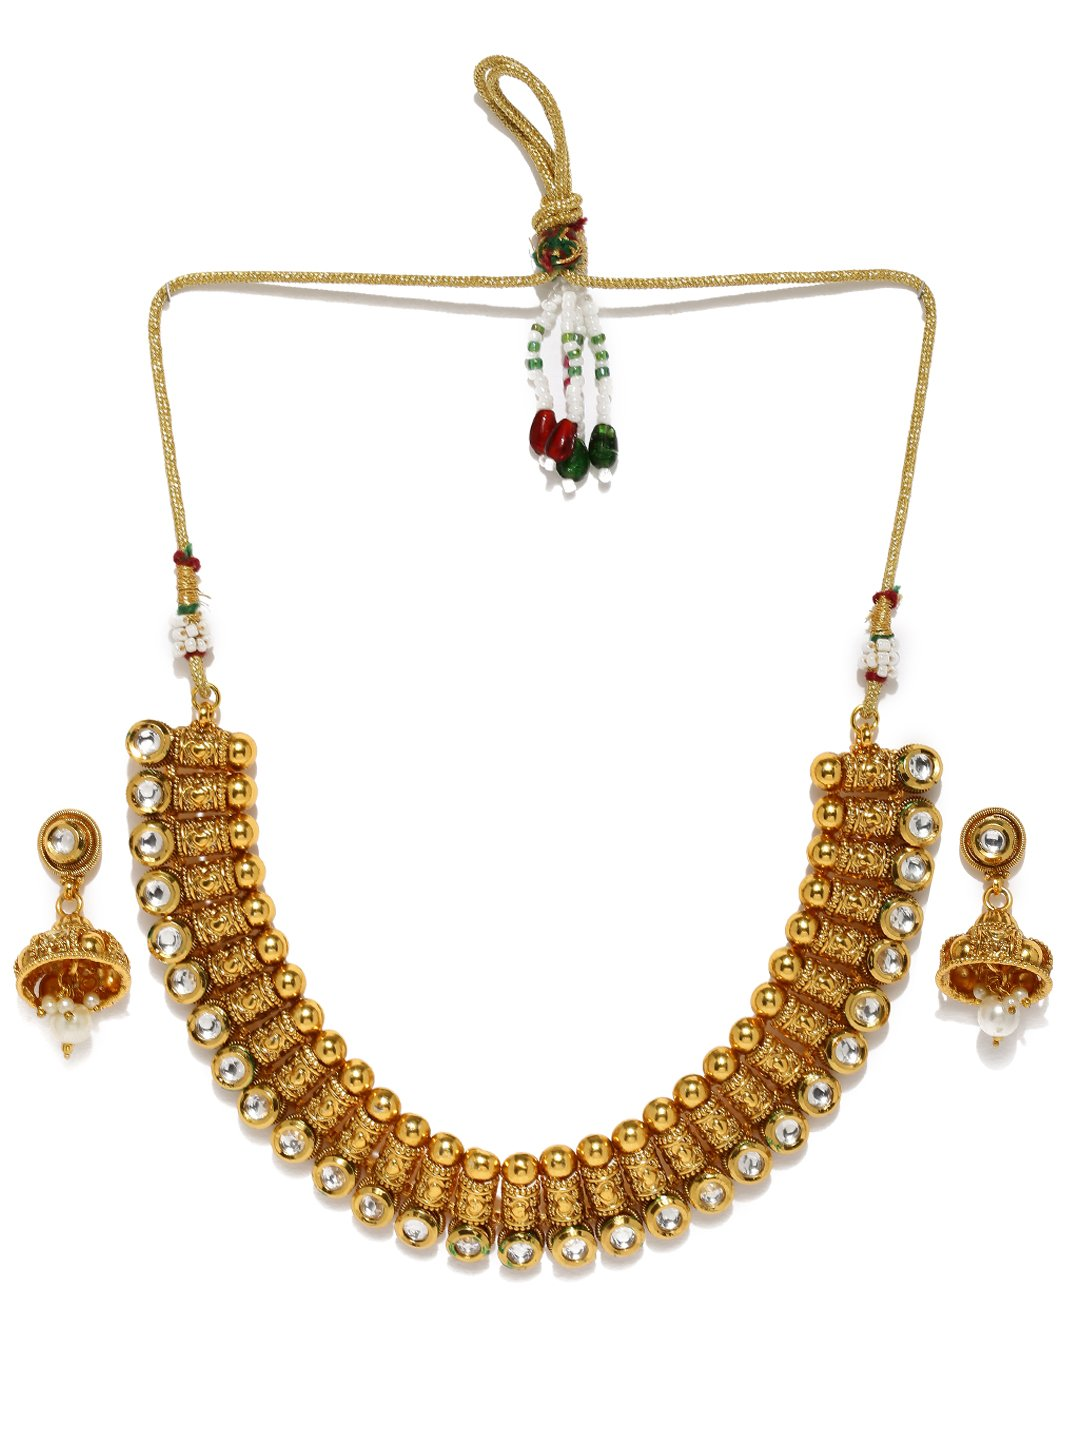 Rubans Handcrafted Gold Plated Traditional Indian Jewelry Set Bollywood Ethnic Wedding Bridal Stone and Pearl Statement Necklace Set for Women